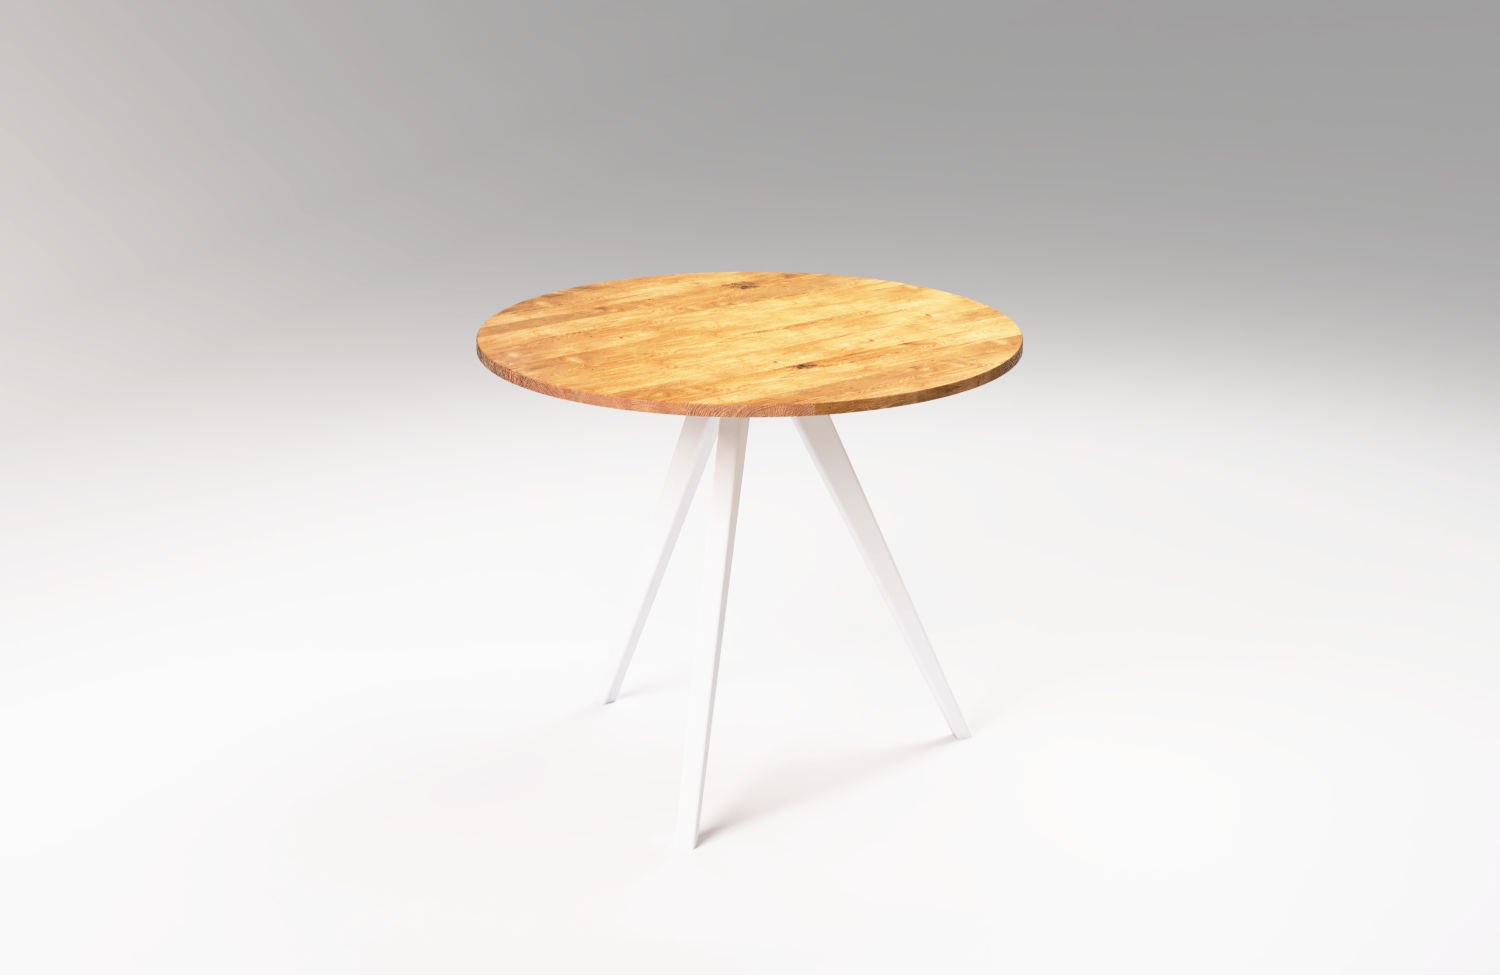 wooden-round-table-MÅNE-90-sam